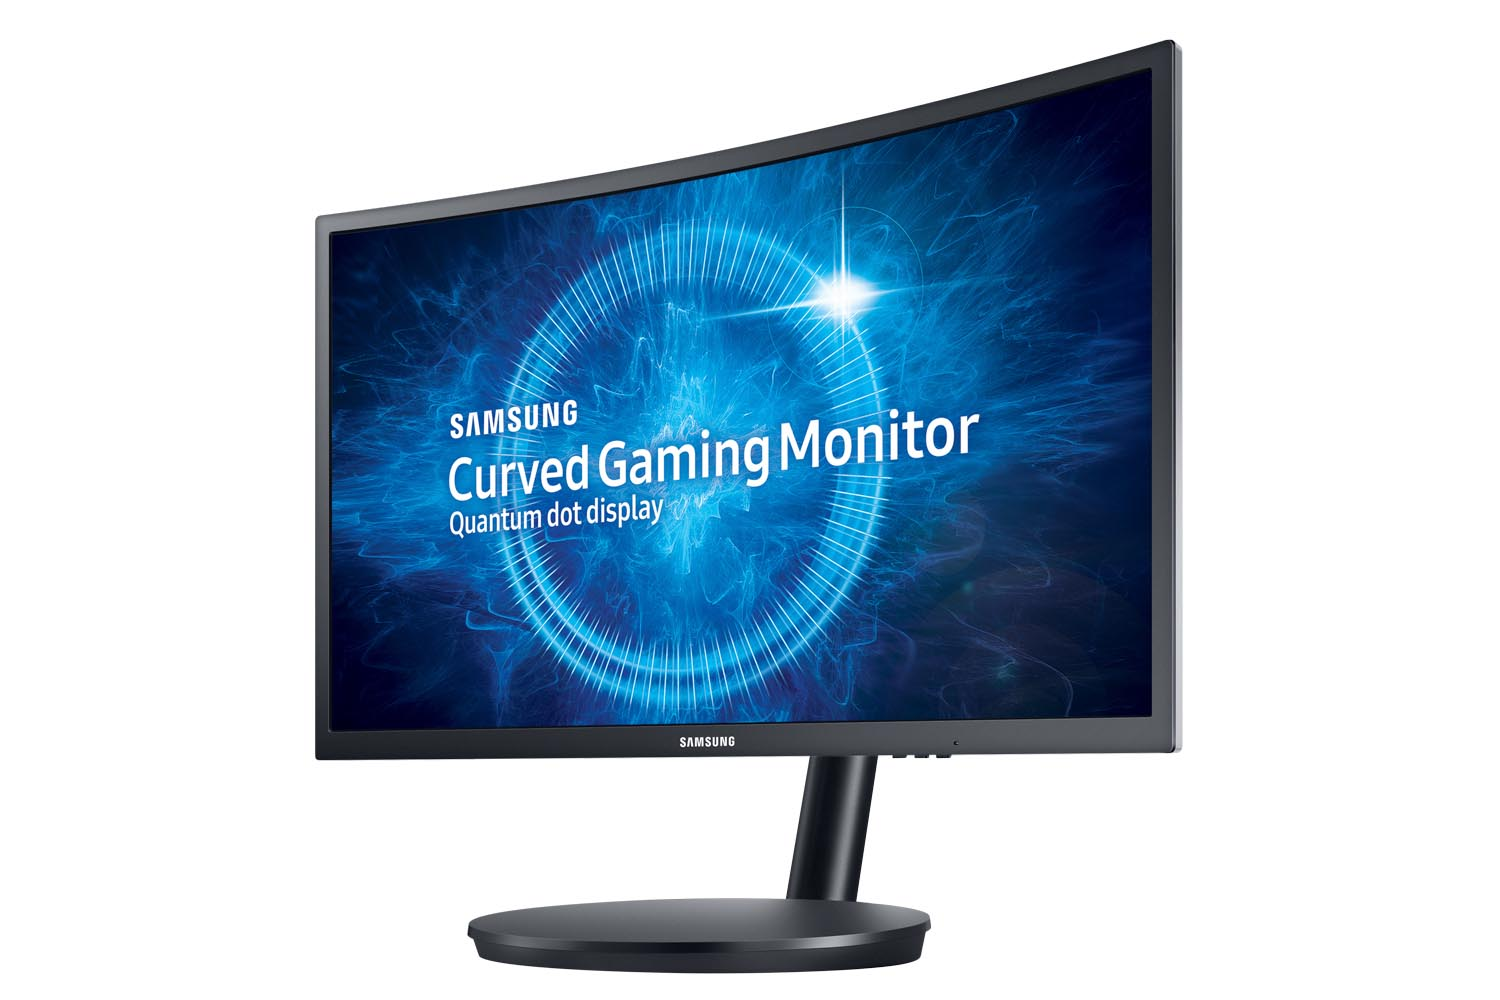 Aweinspiring Photo Editing Samsung Launches Ever Quantum Dot Curved Gaming Monitor Curved Vs Flat Monitor Cnet Curved Or Flat Monitor dpreview Curved Vs Flat Monitor